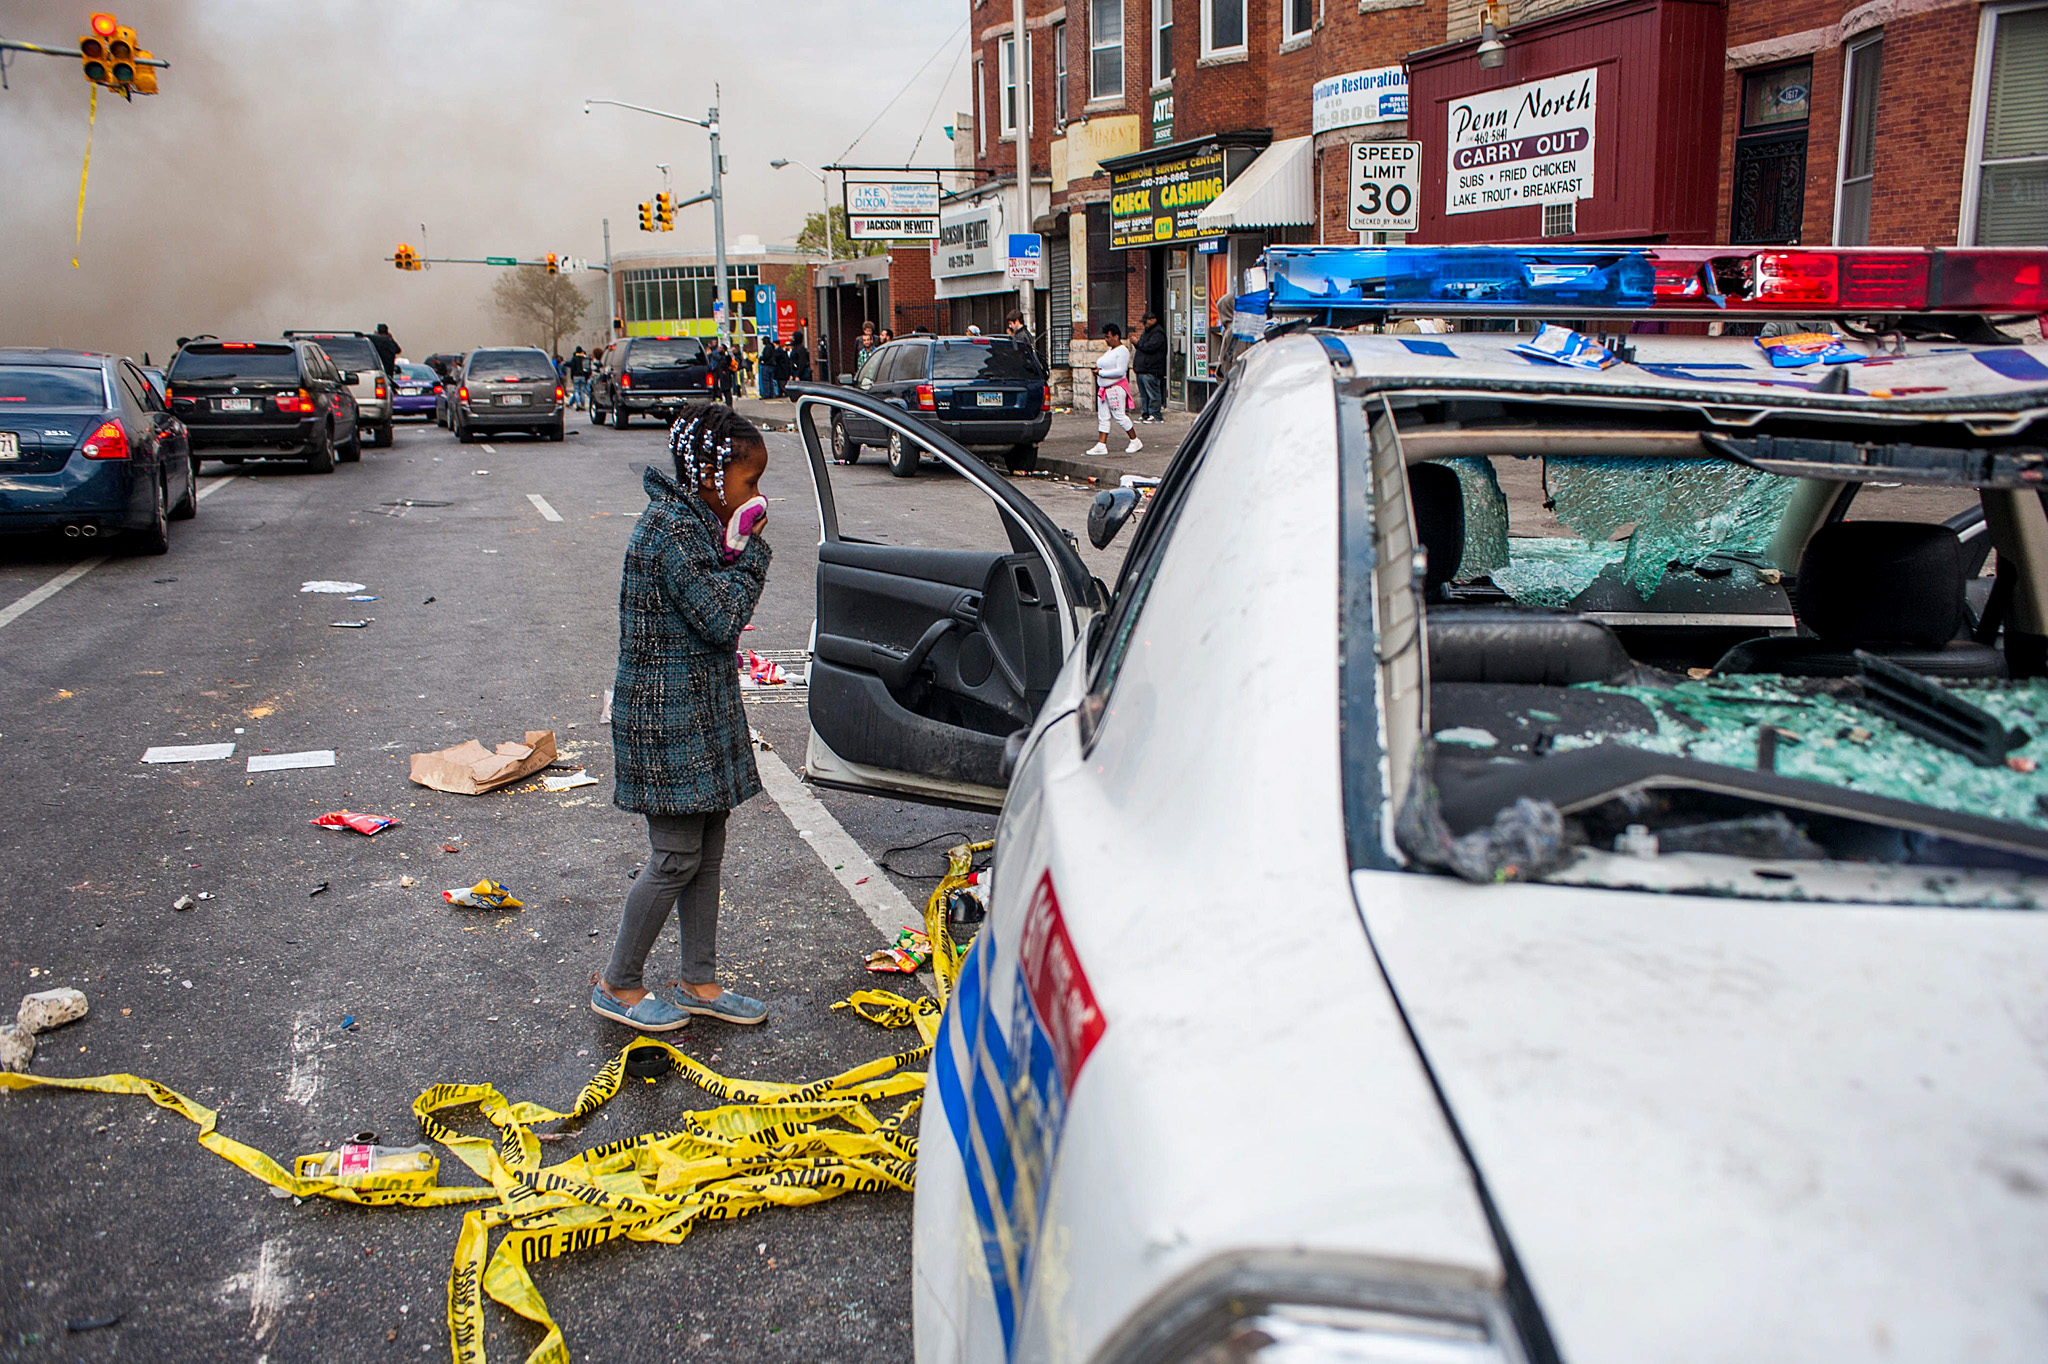 Demonstrators Gather Outside Baltimore Police Station to Protest Death of Freddie Gray...epa04723487 A young girl peers into a destroyed Baltimore City Police car along North Avenue near a CVS that was on fire during a protest for the death of Freddie Gray in Baltimore, Maryland, USA, 27 April 2015. Gray died of spinal cord injuries on 19 April while in police custody; the US Justice Department announced that they are launching their own investigation into the case.  EPA/NOAH SCIALOM